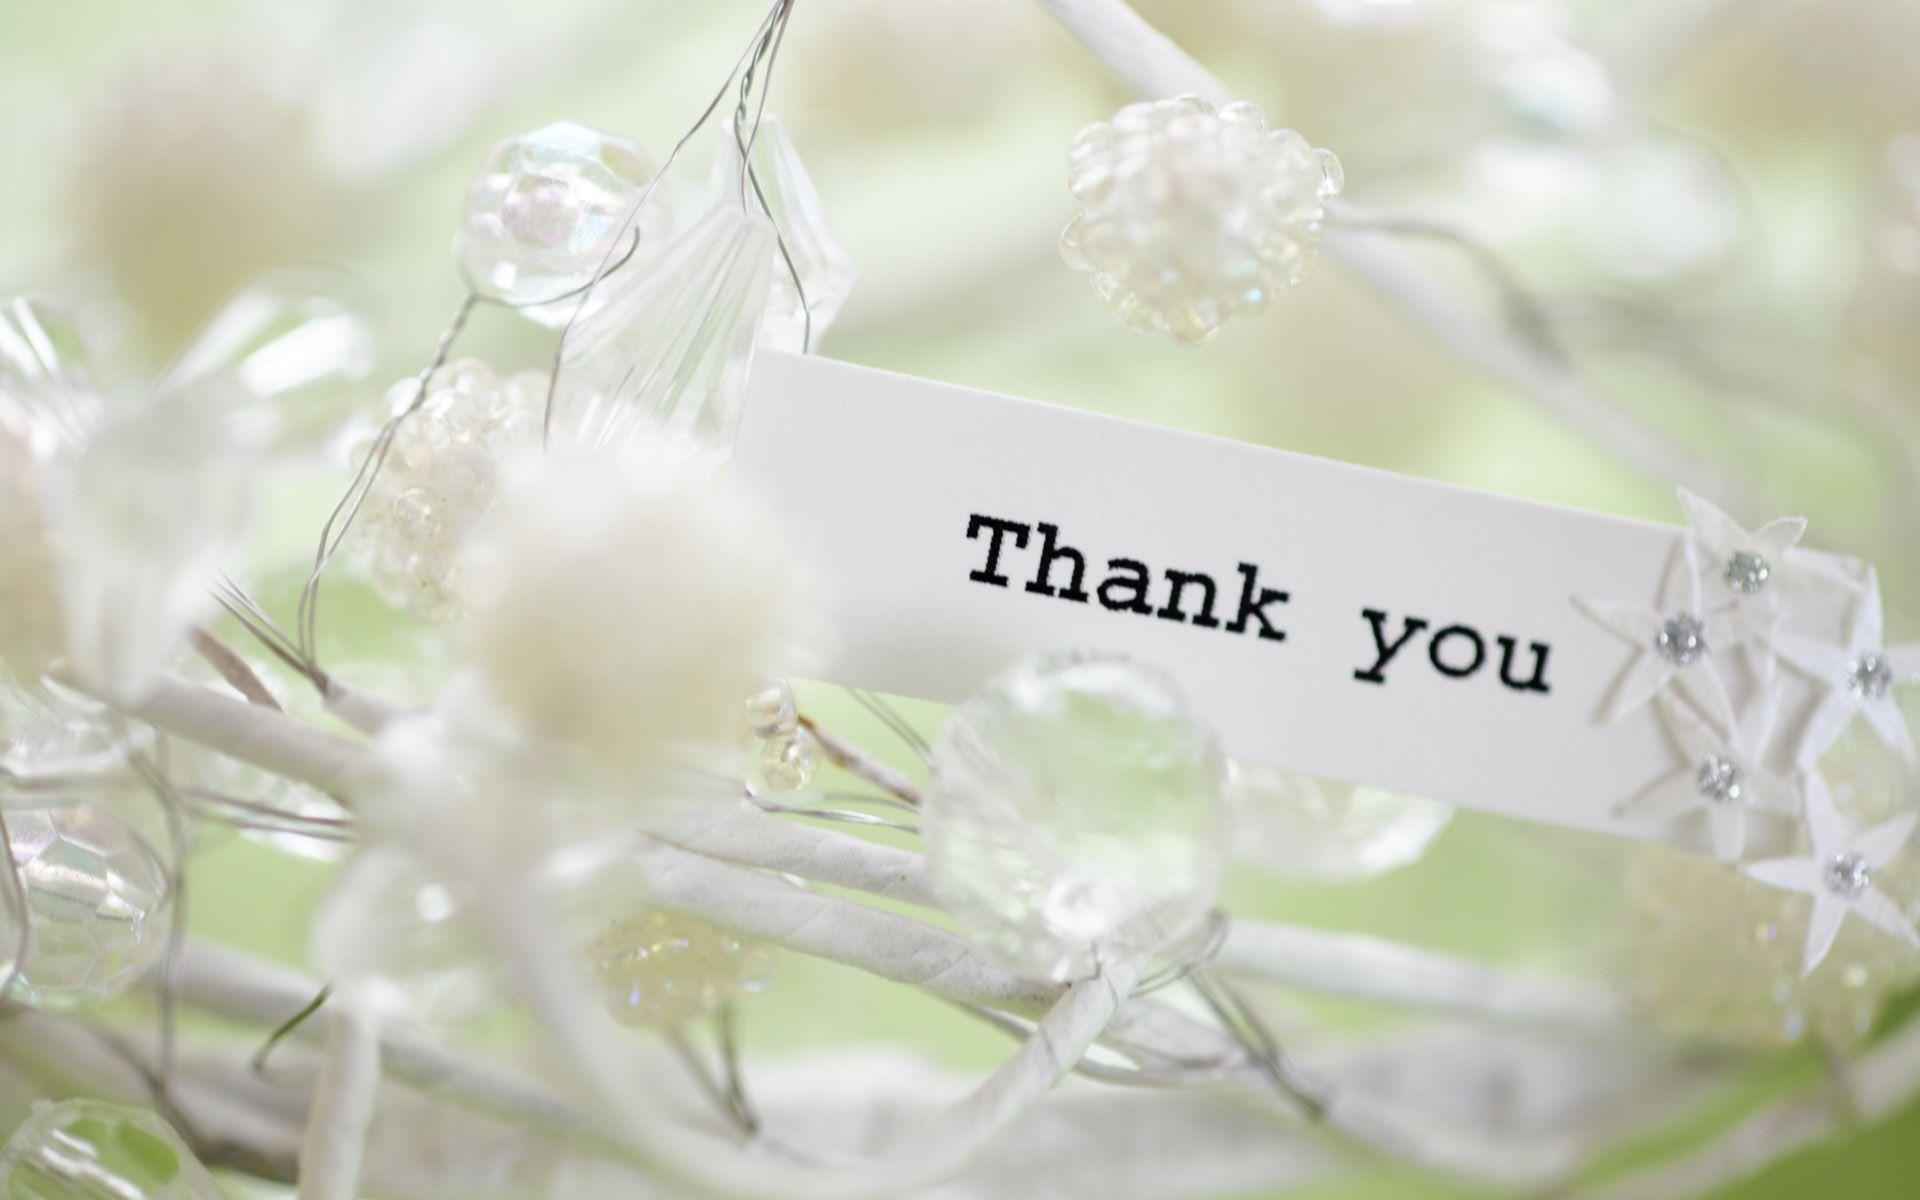 Wallpapers For > Thank You Wallpaper Free Download